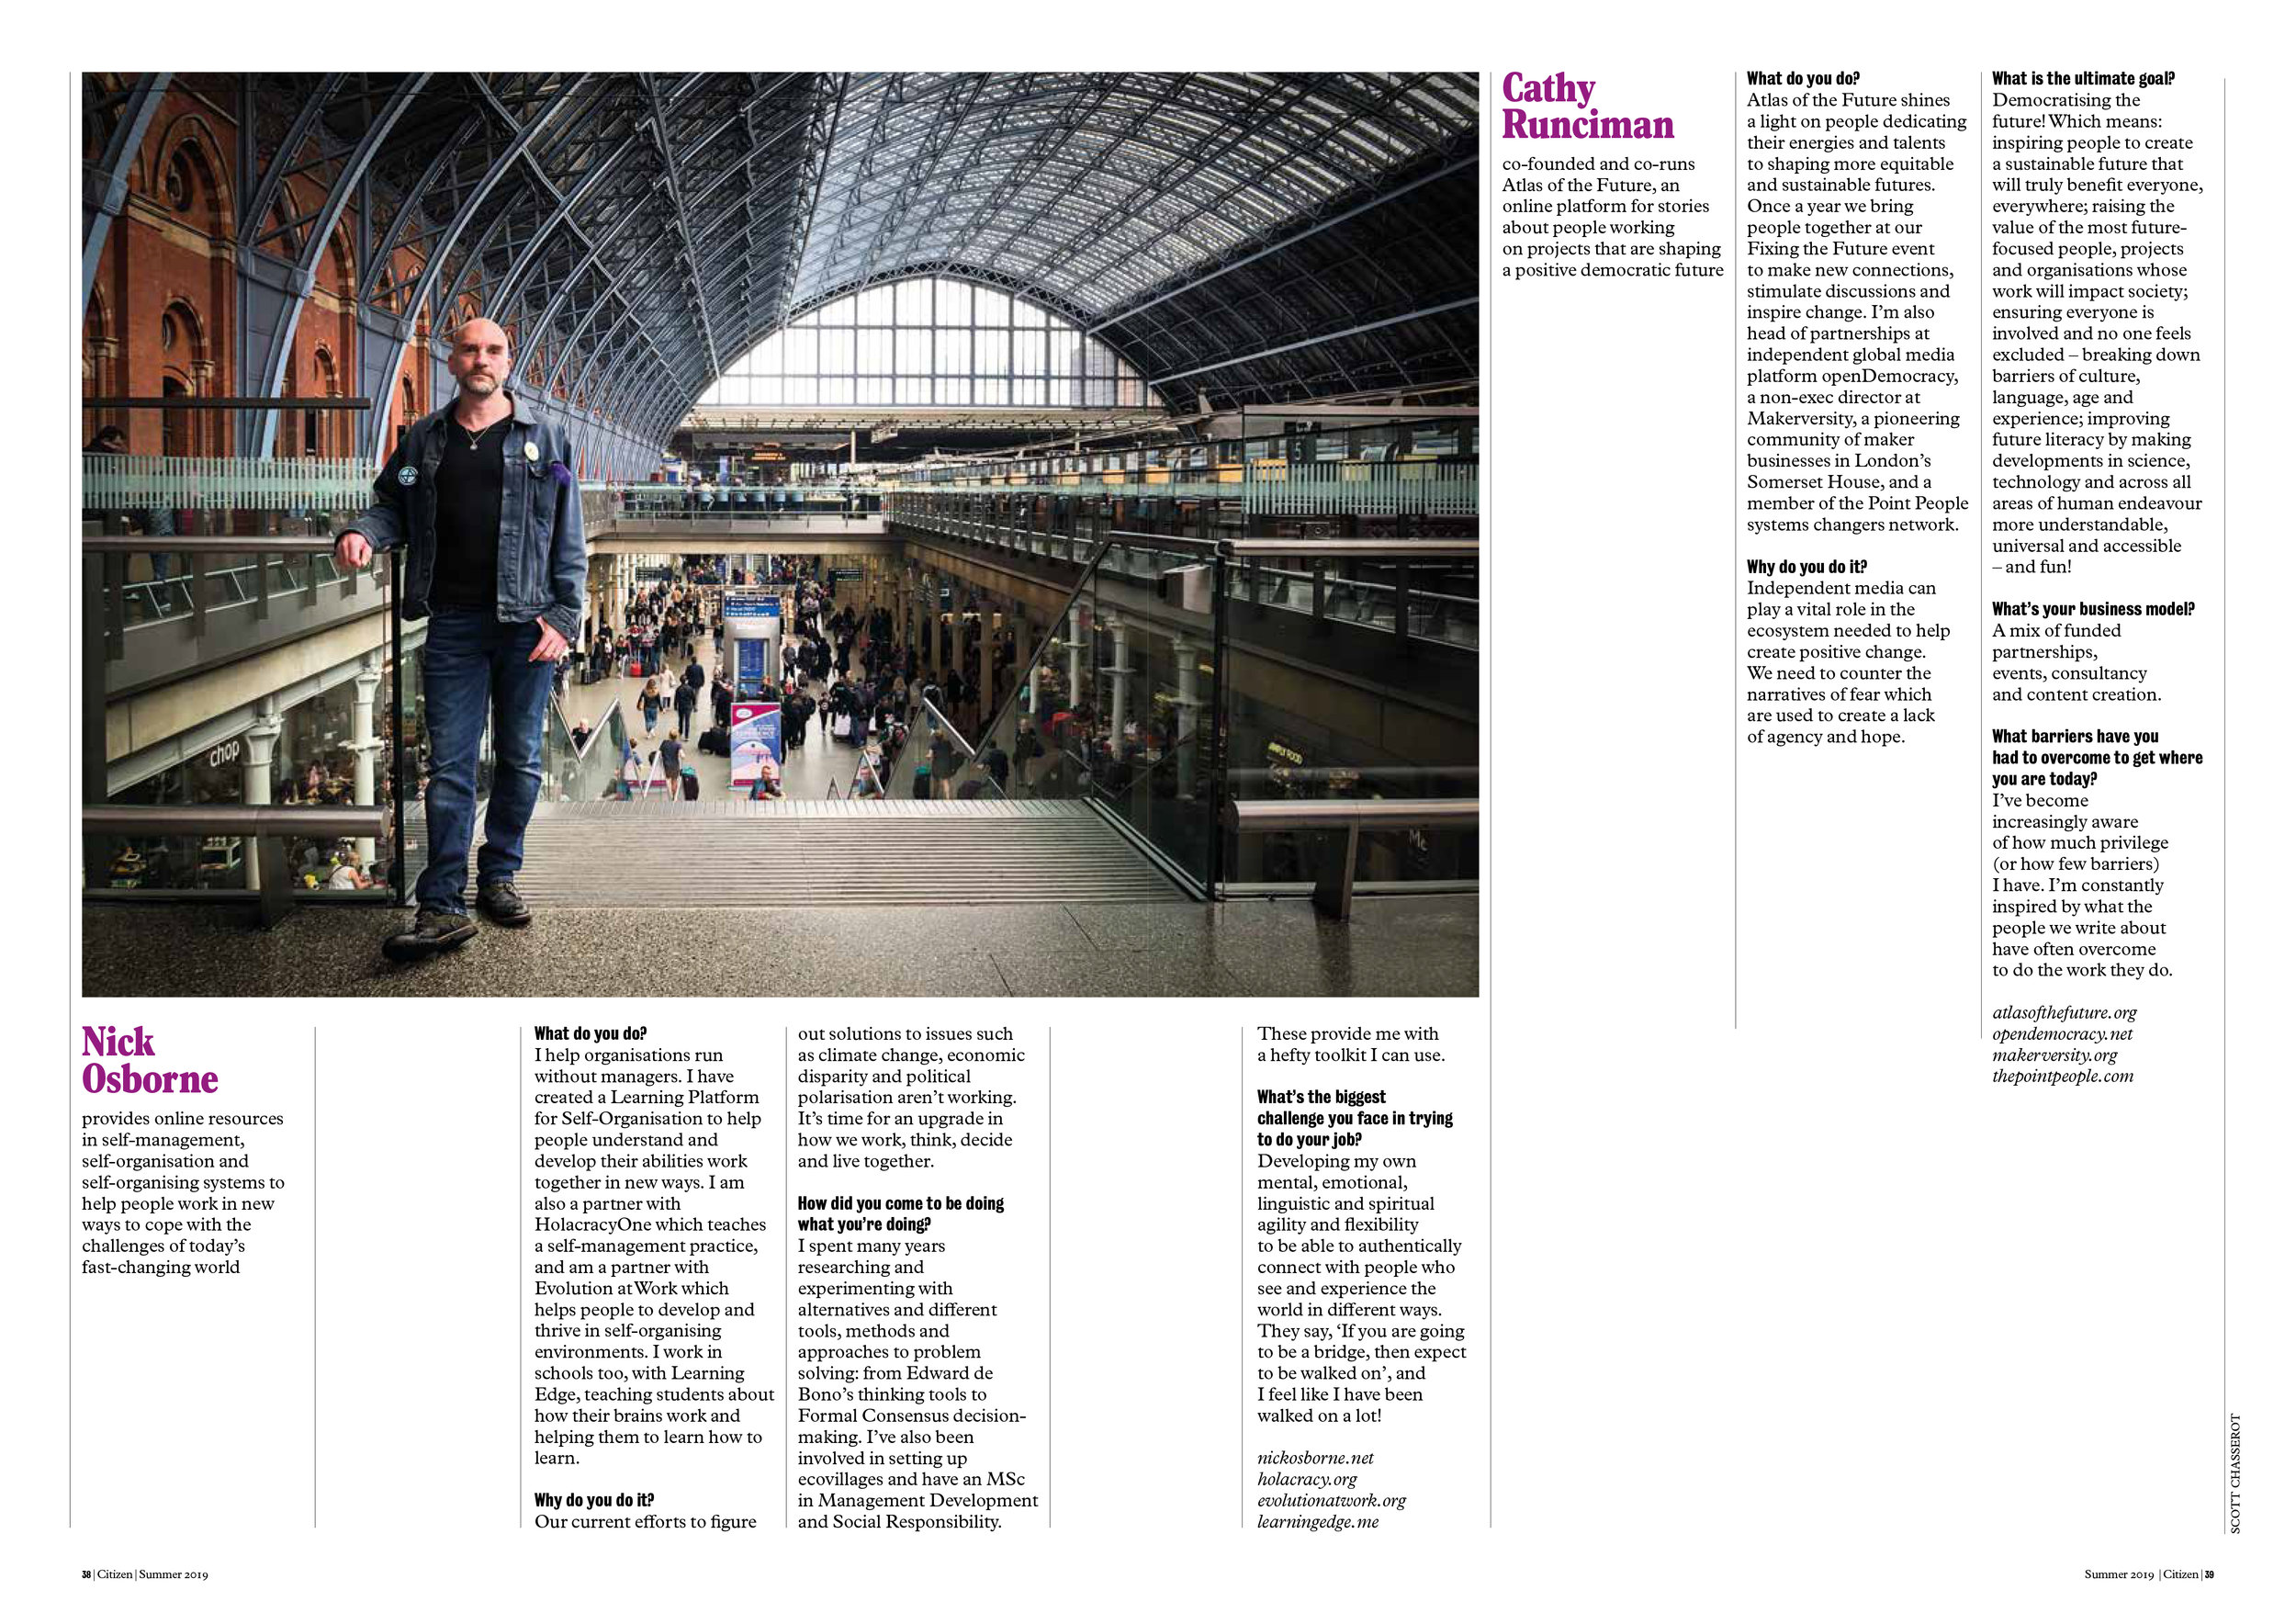 All Change Article featuring Nick Osborne. Photograph by Freddie Ardley.